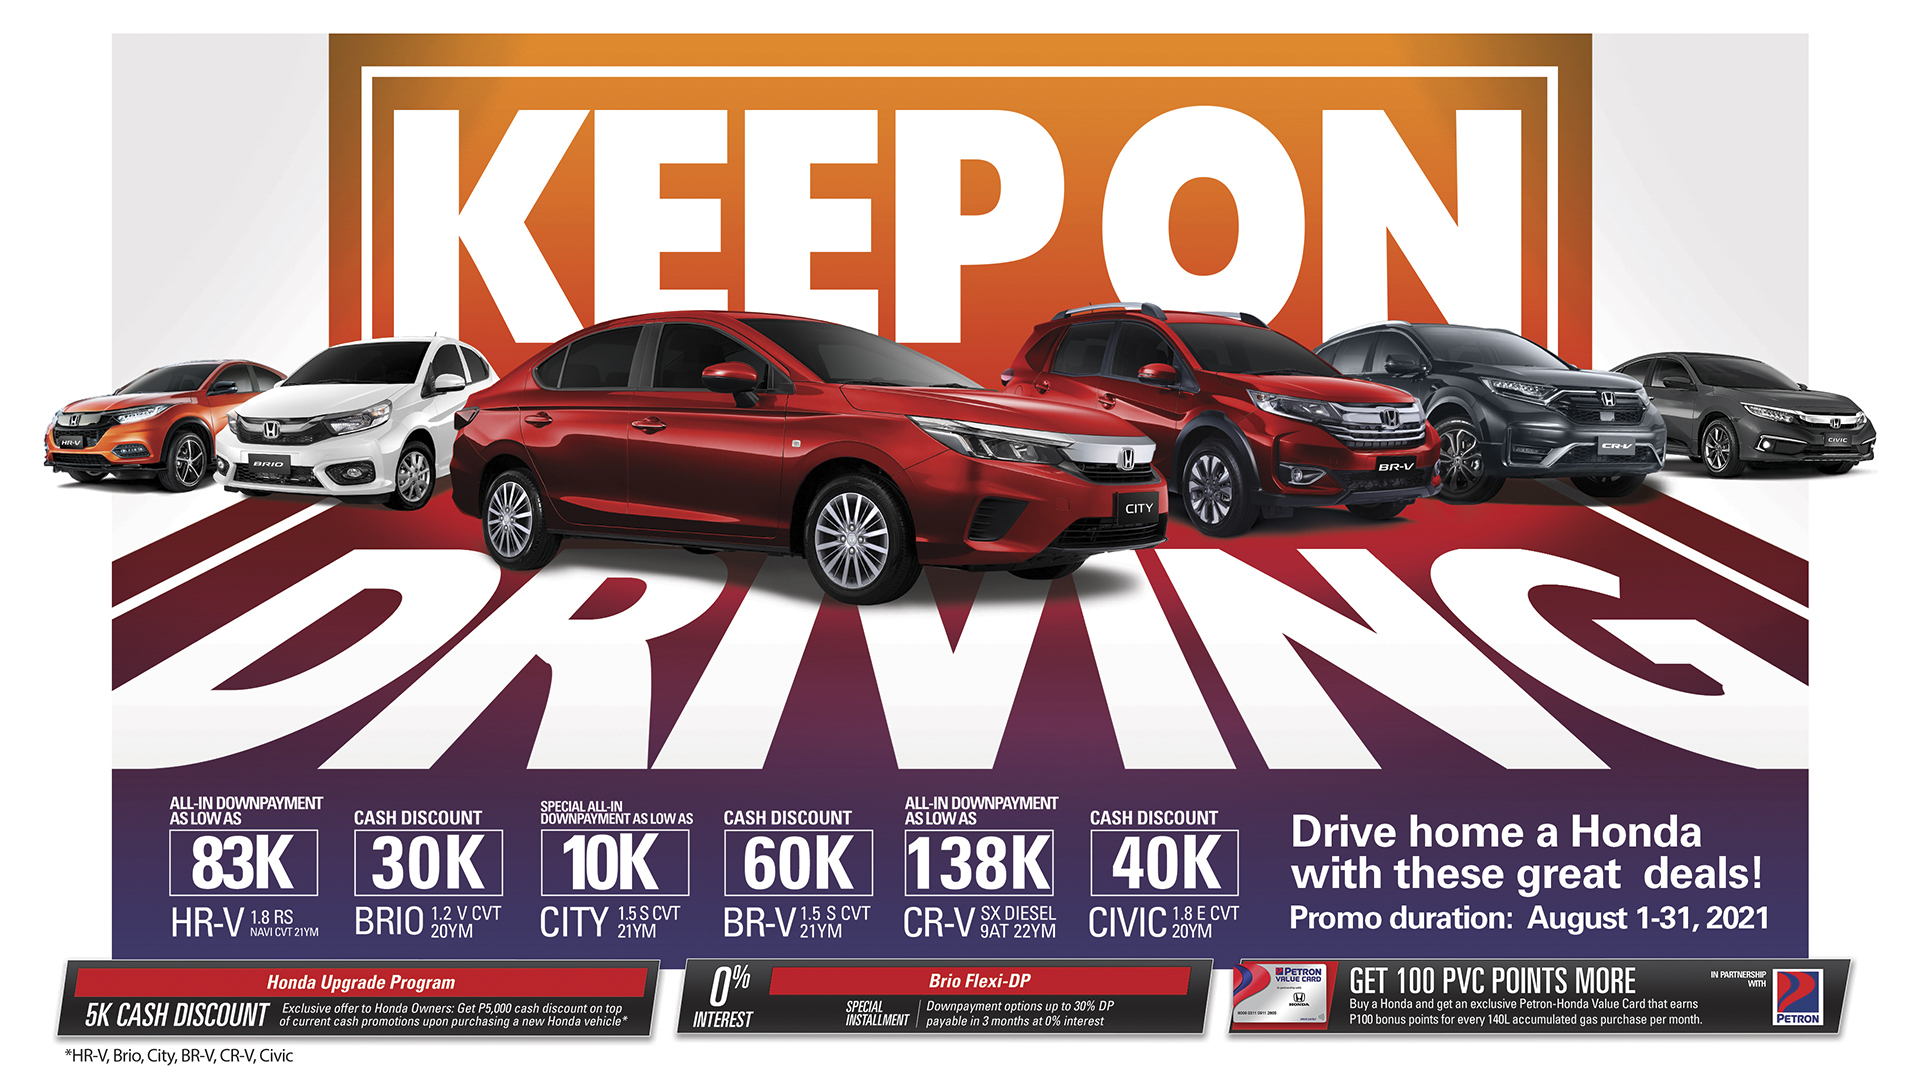 Honda offers exclusive deals and exciting promos this August